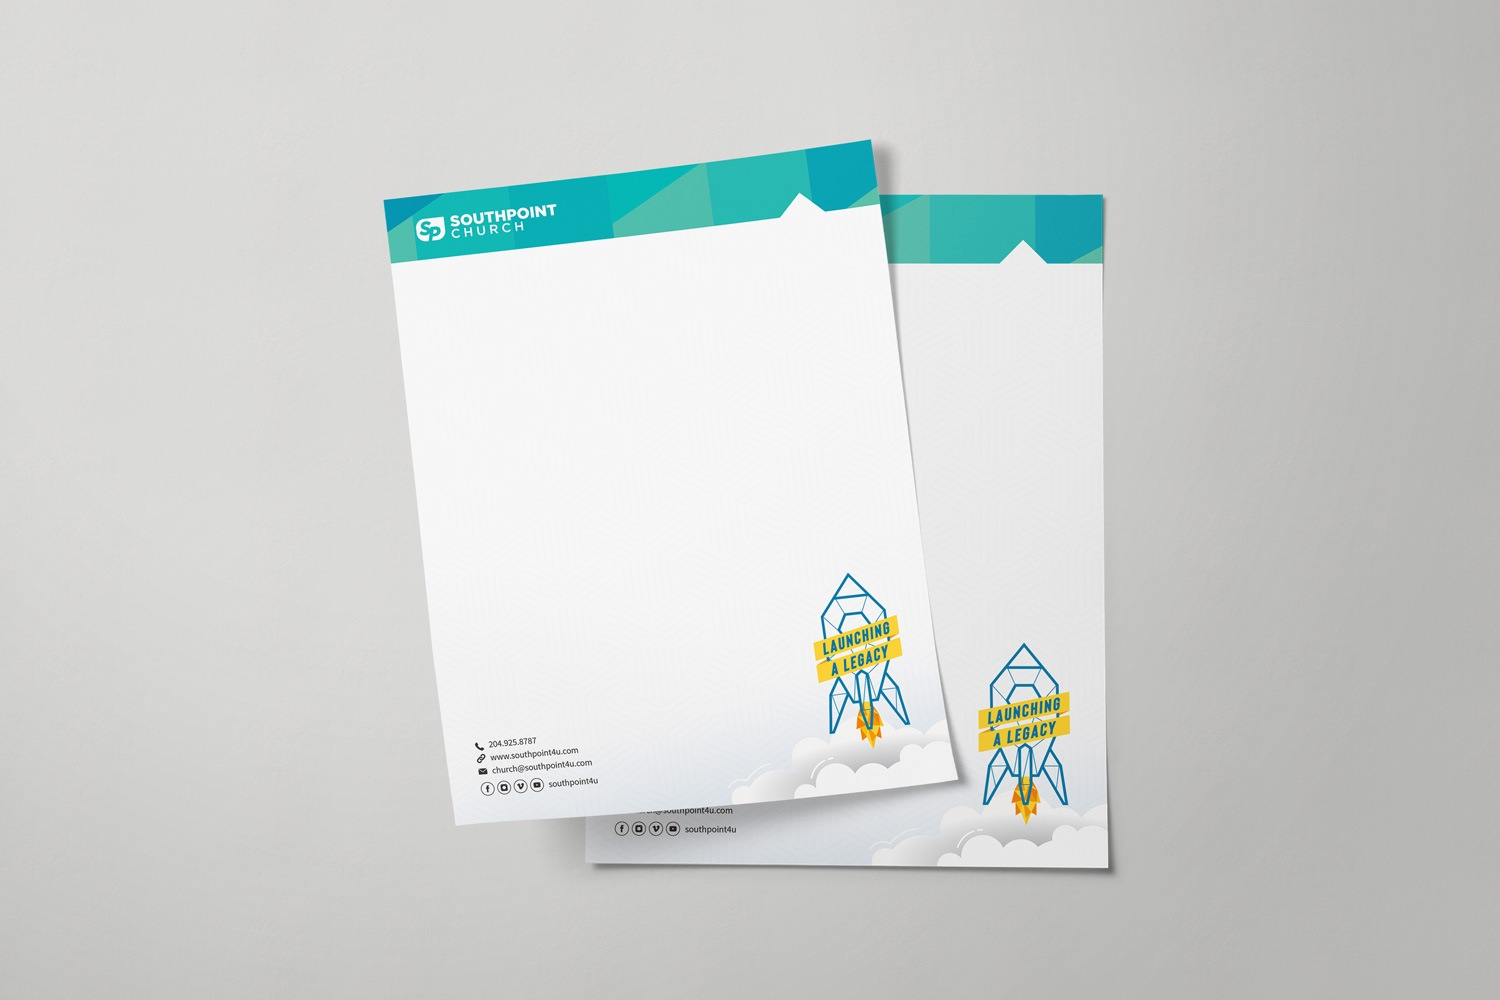 Church Building Campaign Letterhead Design Ideas